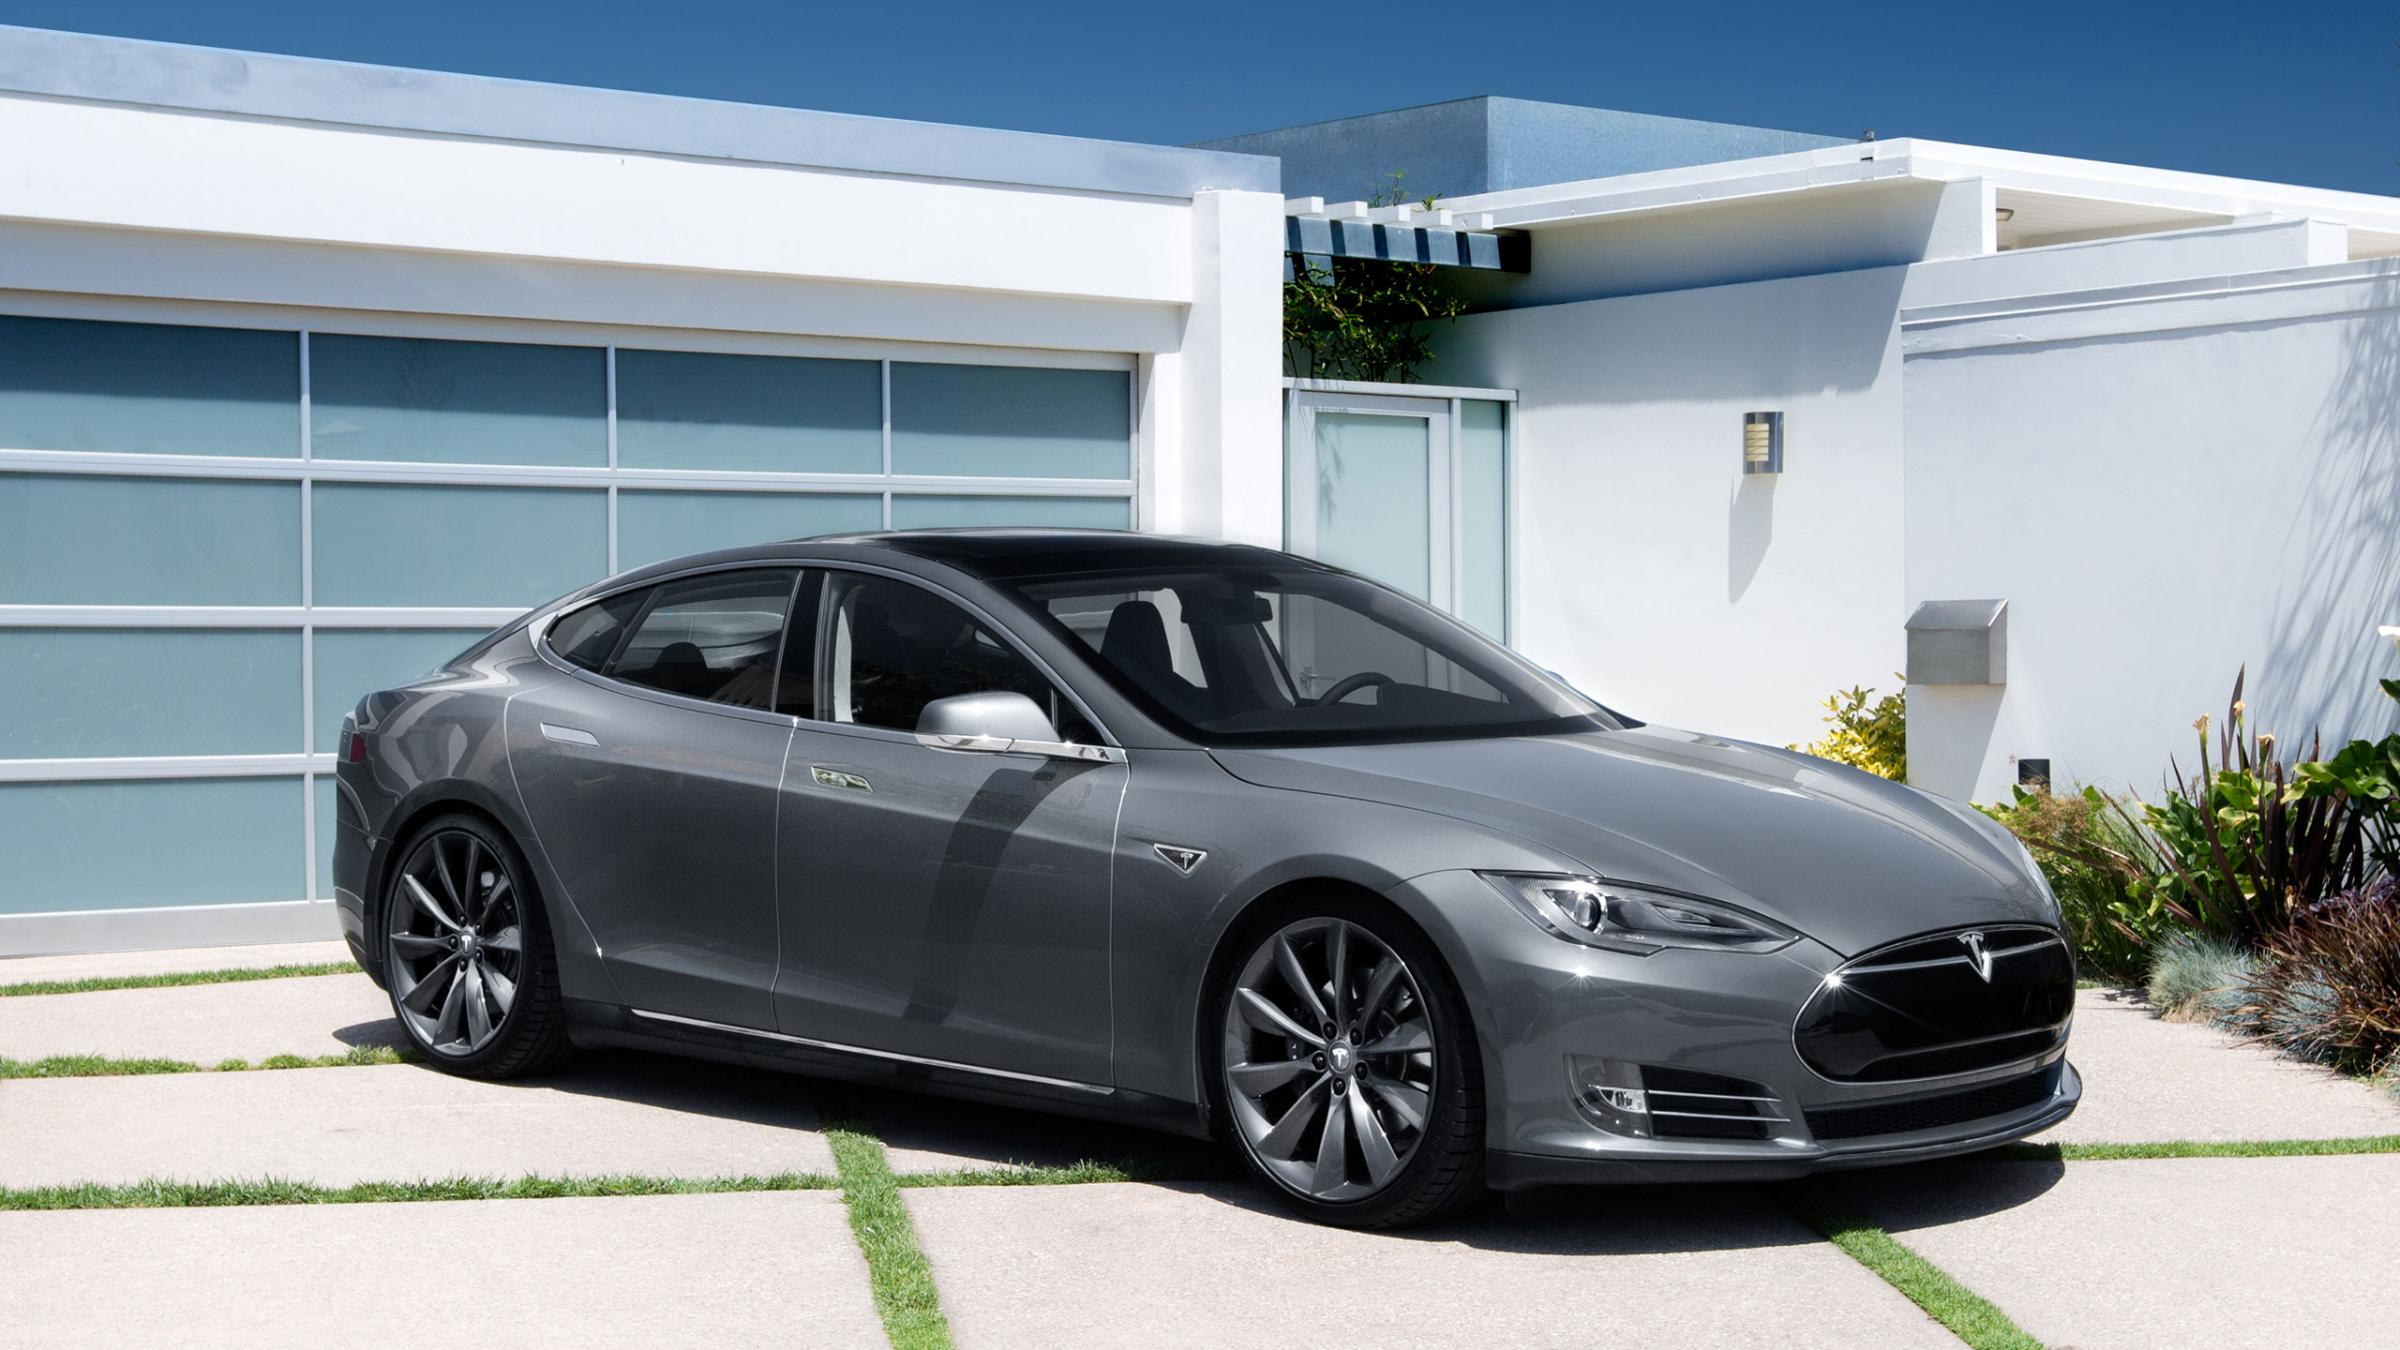 the tesla model s todd bianco 39 s blog. Black Bedroom Furniture Sets. Home Design Ideas